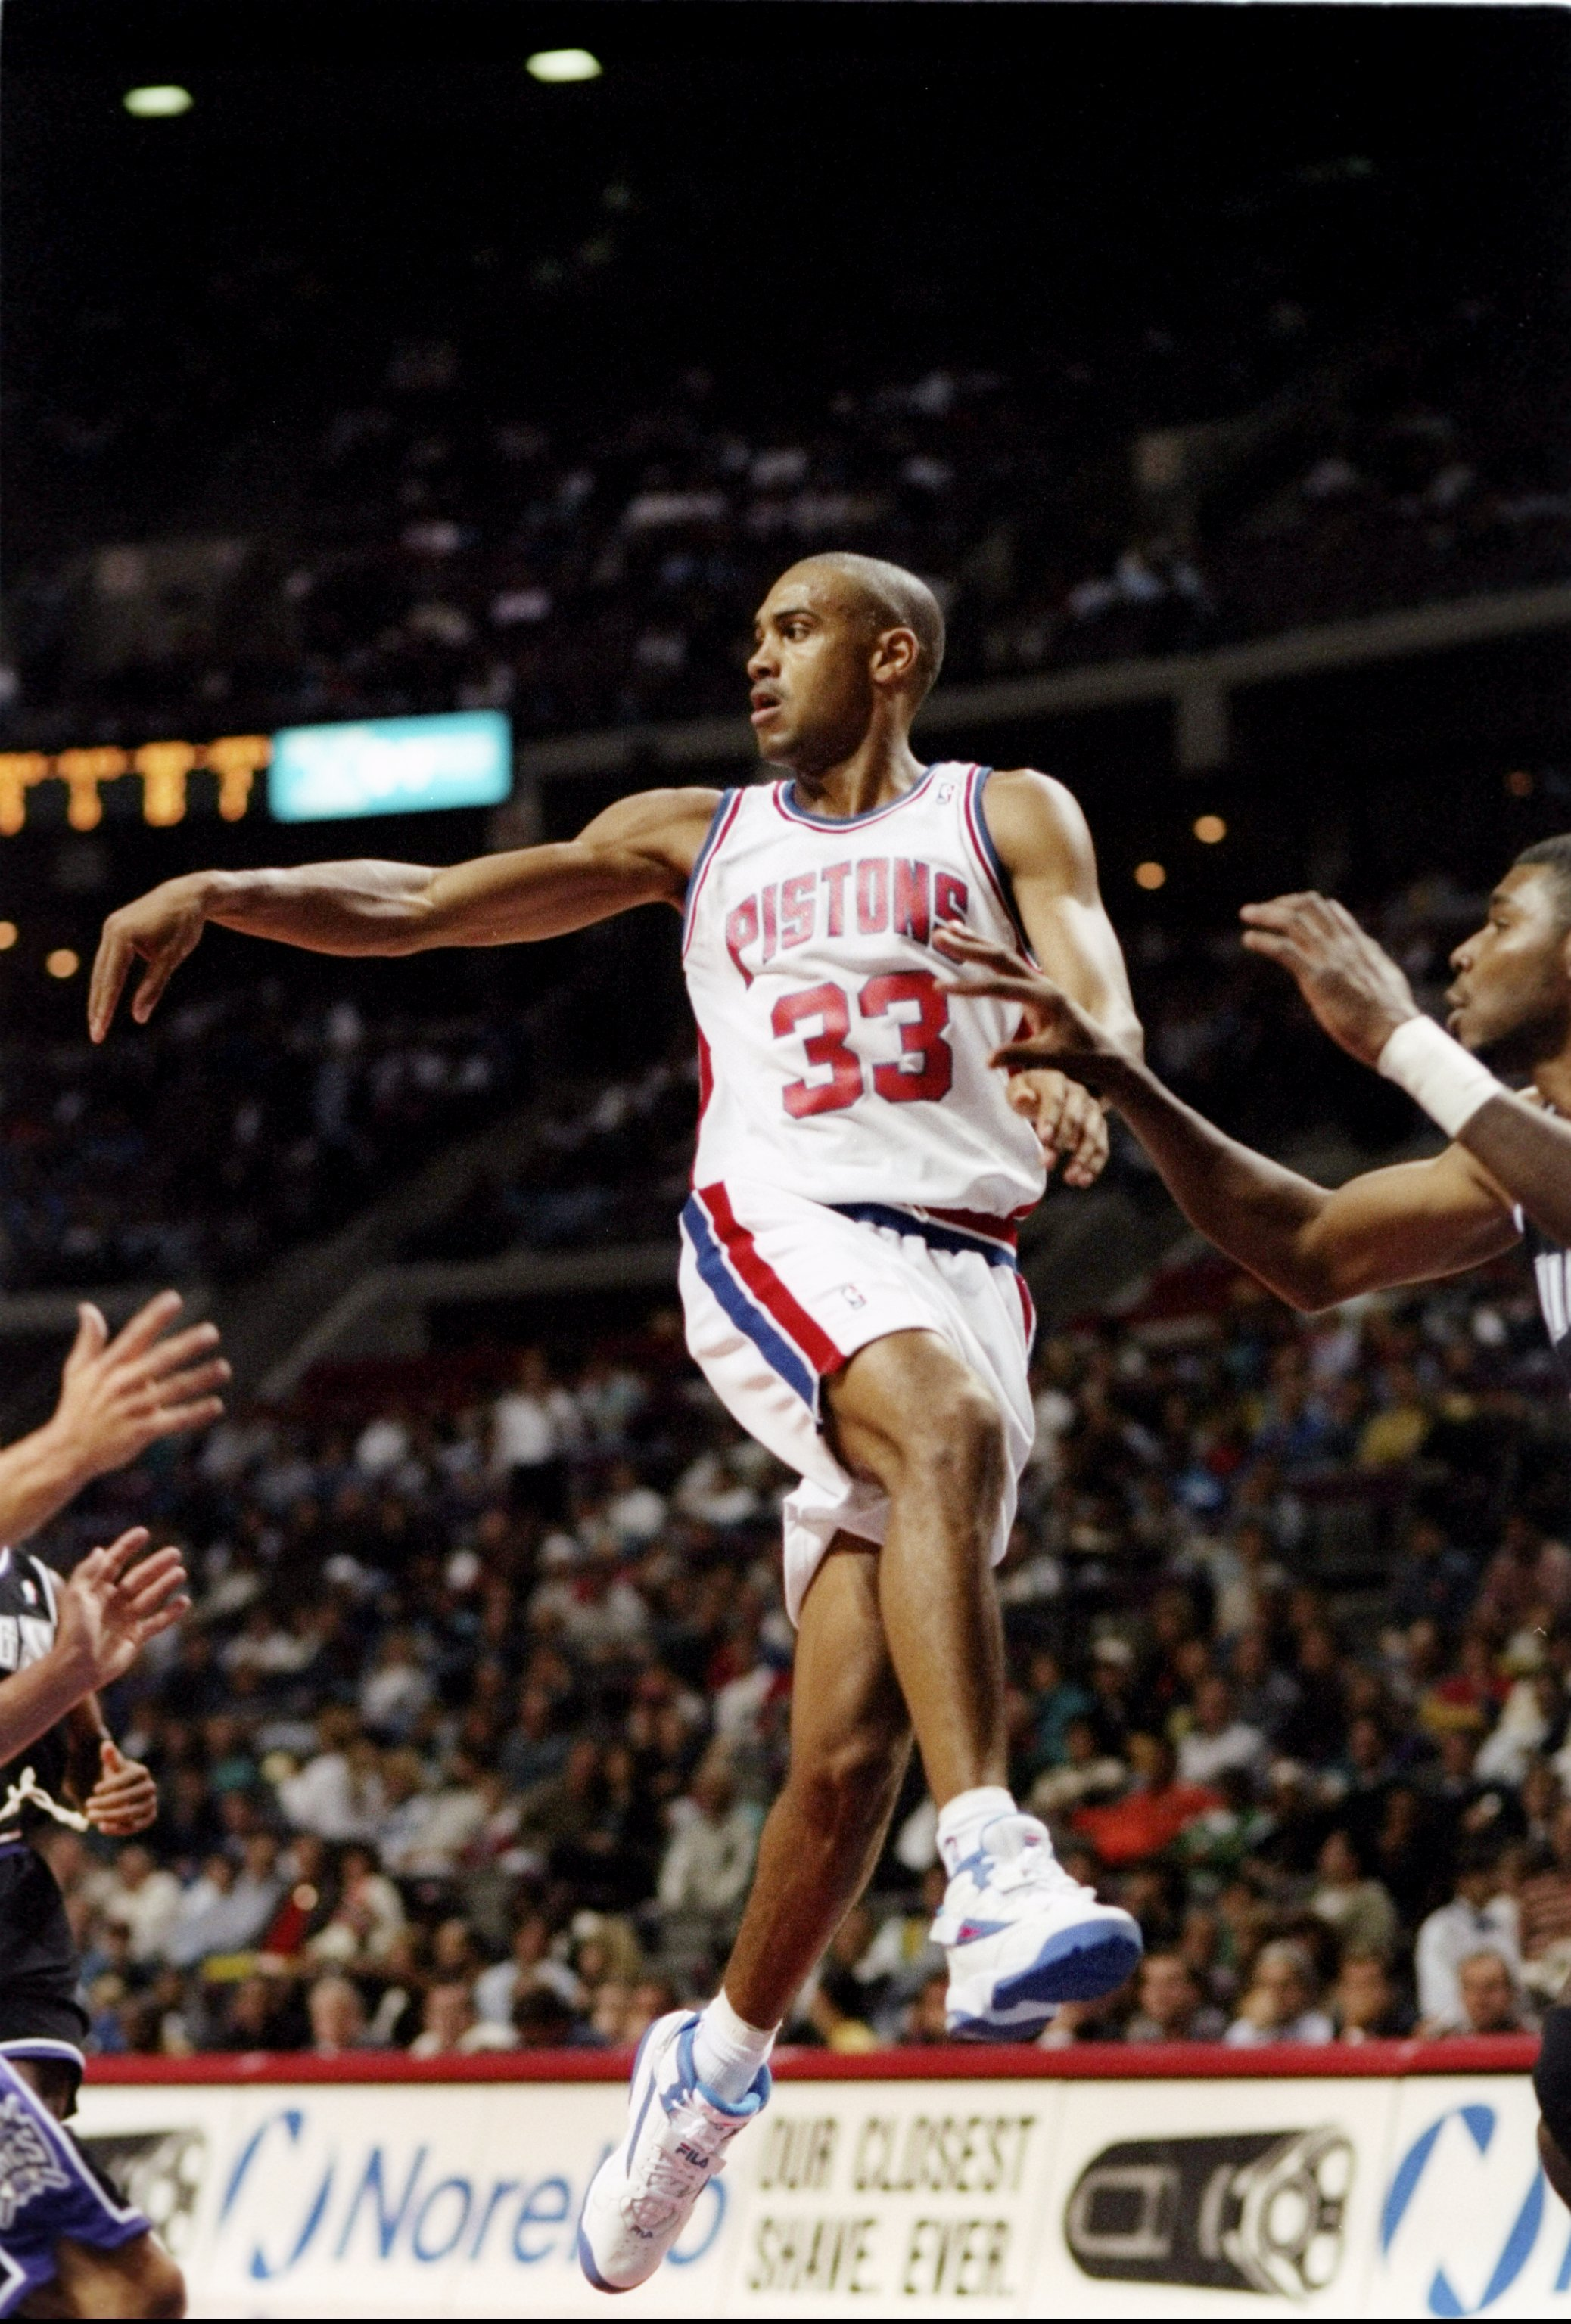 27 Oct 1994: Forward Grant Hill of the Detroit Pistons goes airborne during a game against the Sacramento Kings at The Palace in Auburn Hills, Michigan. The Pistons won the game, 107-91.